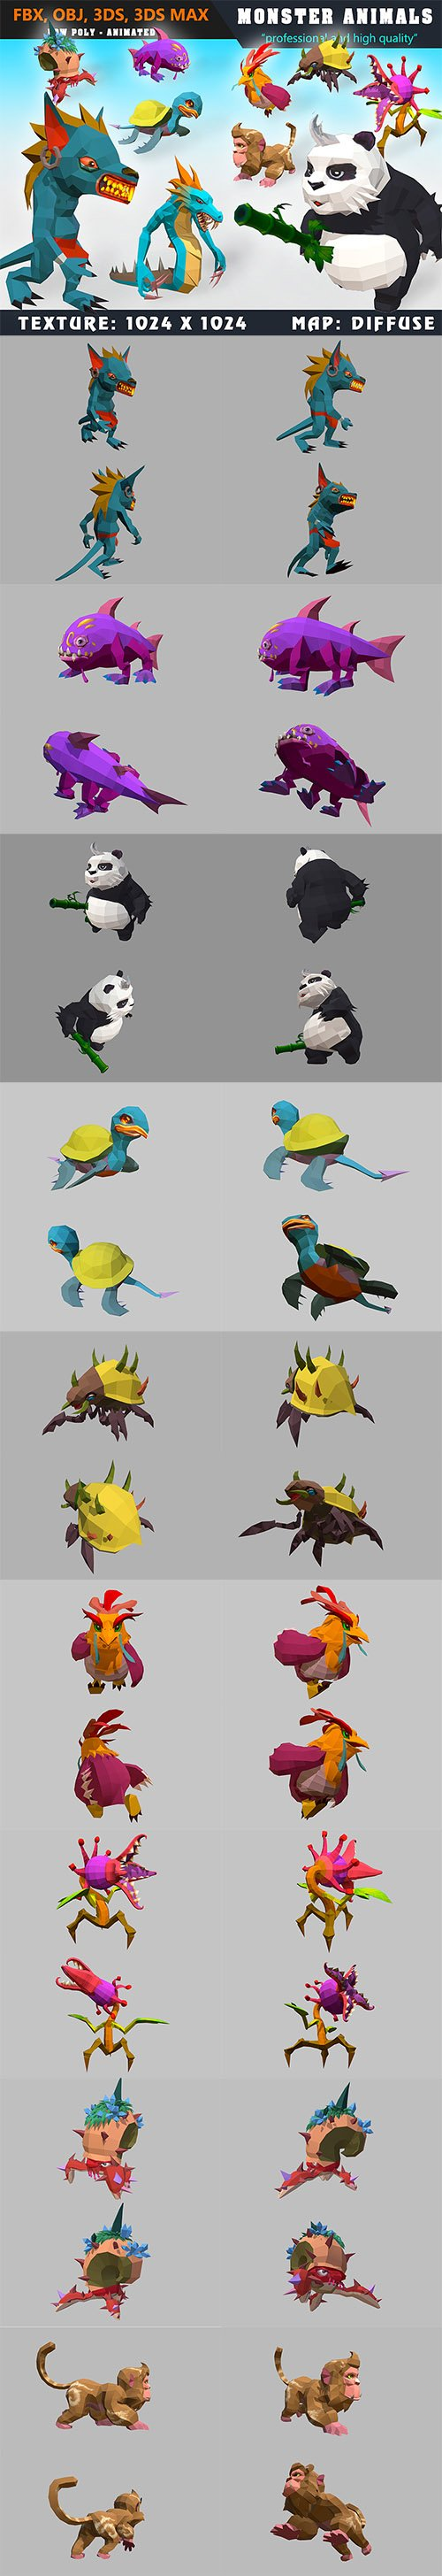 Low Poly Monster Cartoon Collection 05 Animated